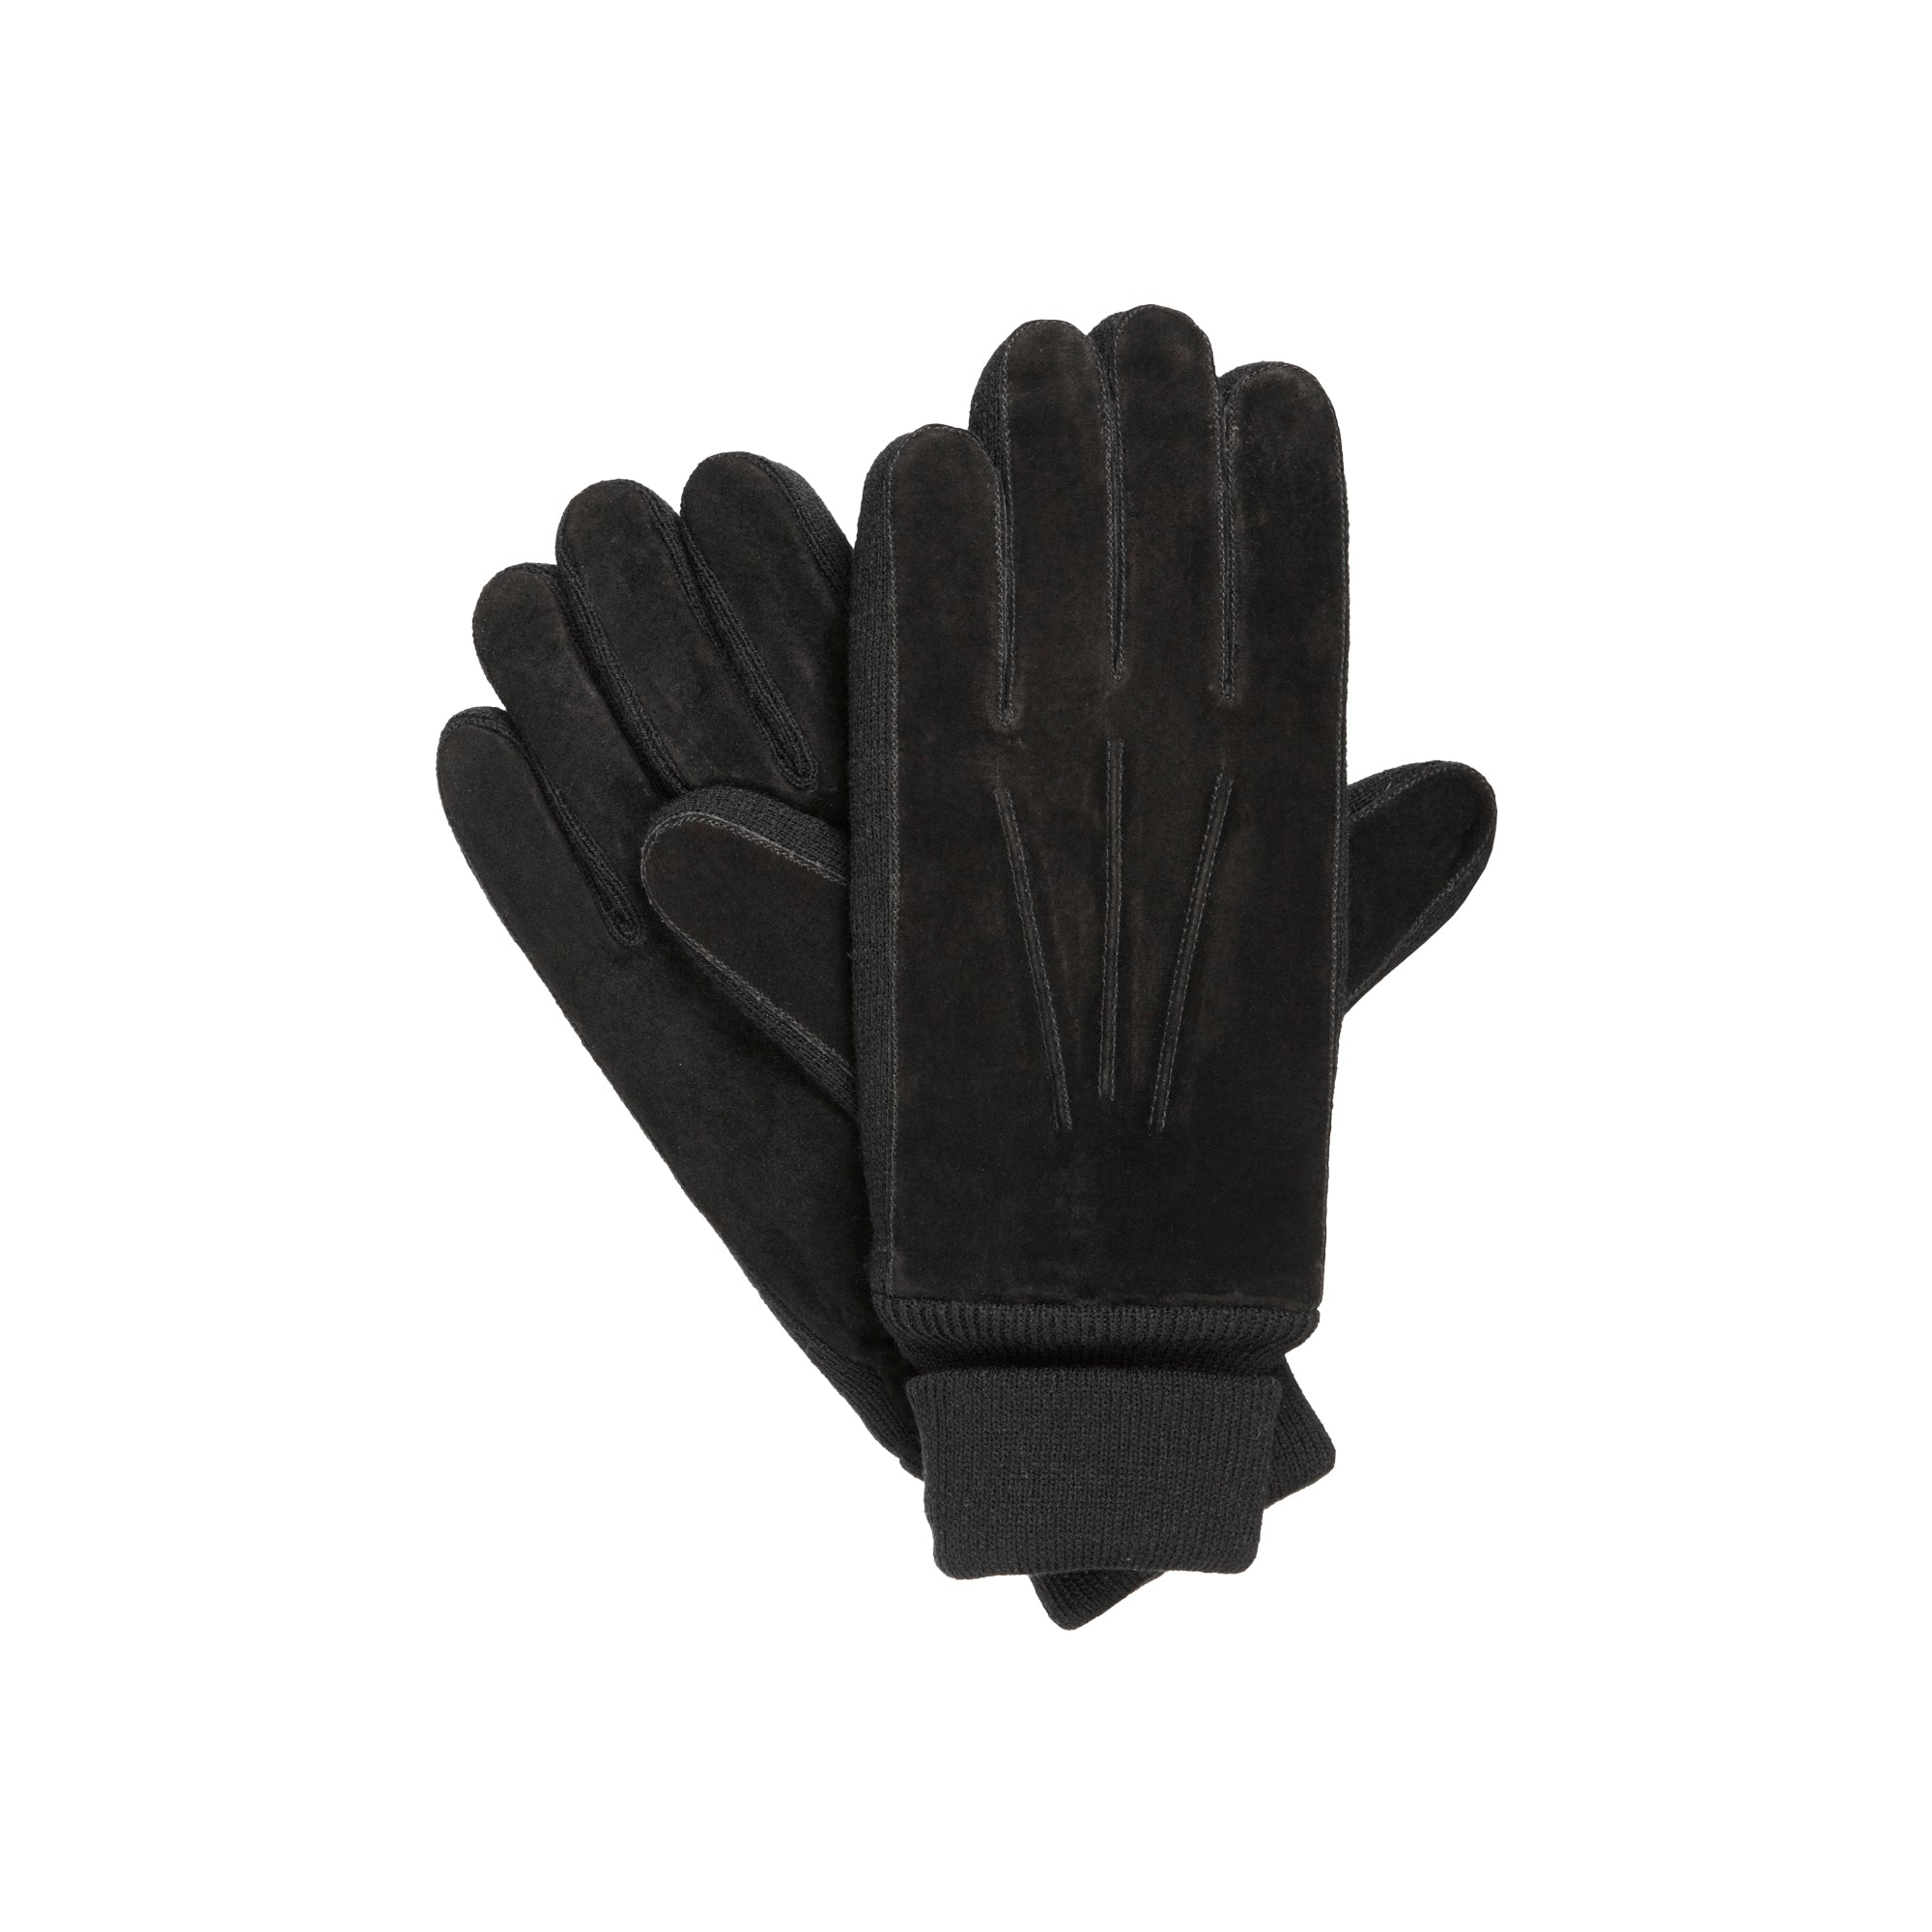 Isotoner Men's Suede Gloves - Thinsulate Lined